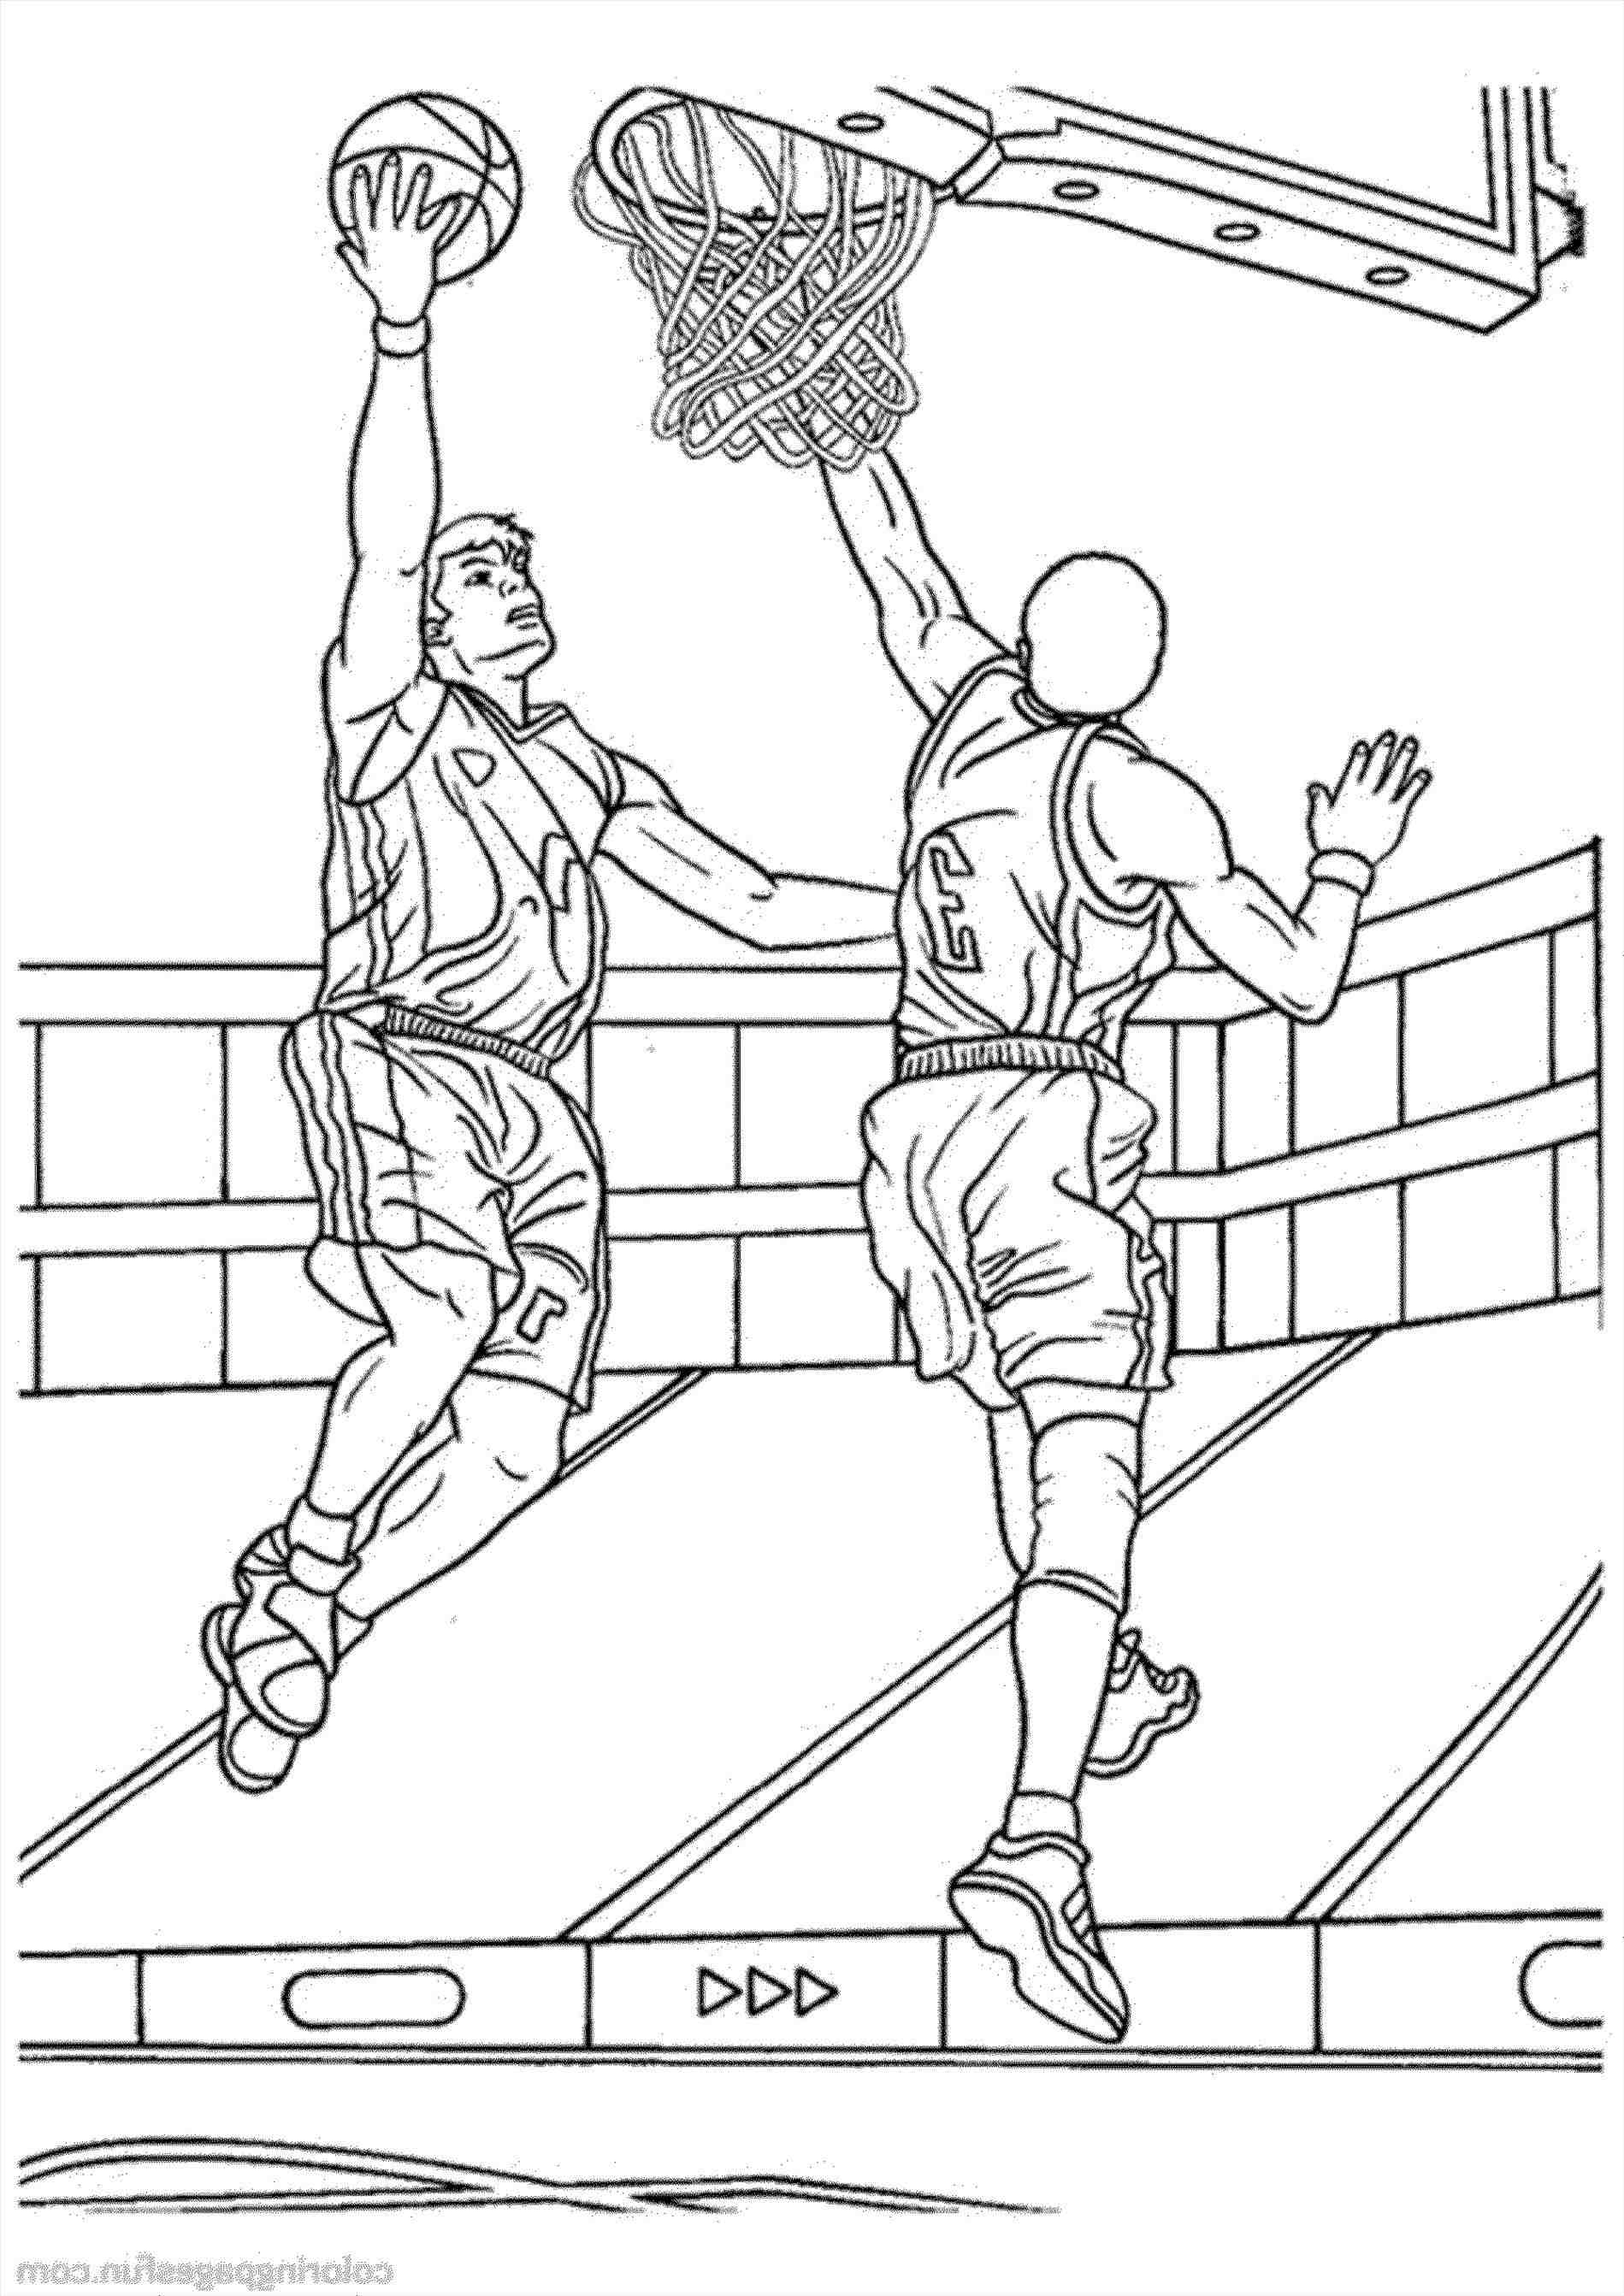 1899x2685 Basketball Clip Art With Coloring Page Rhalphabrainsznet Simple